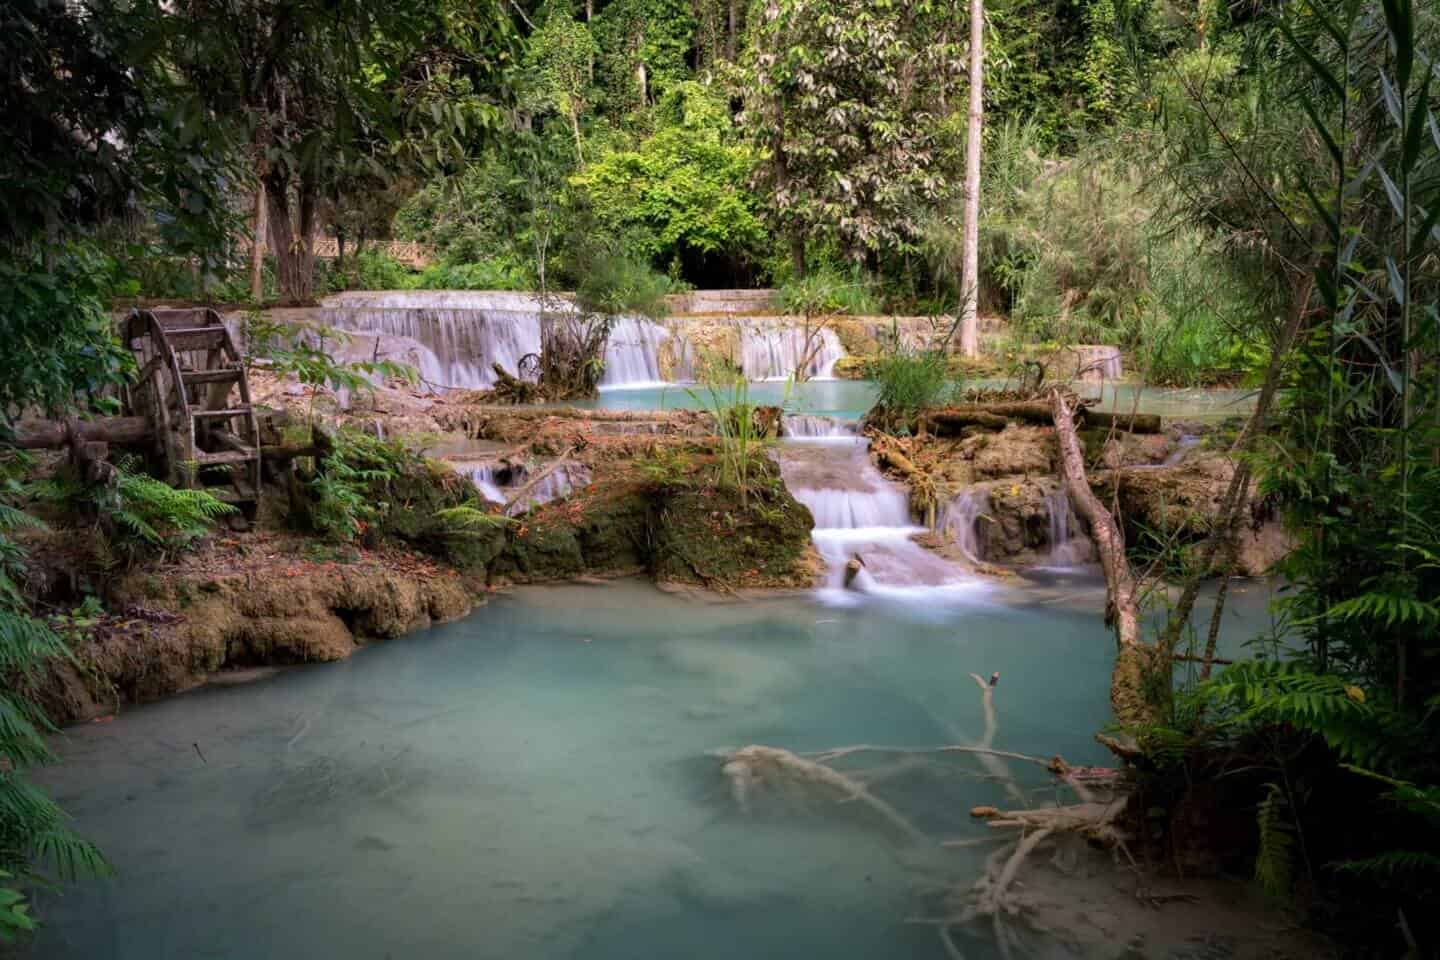 A small wooden mill adds a charming subject to this beautiful scene in Kuang Si Falls.